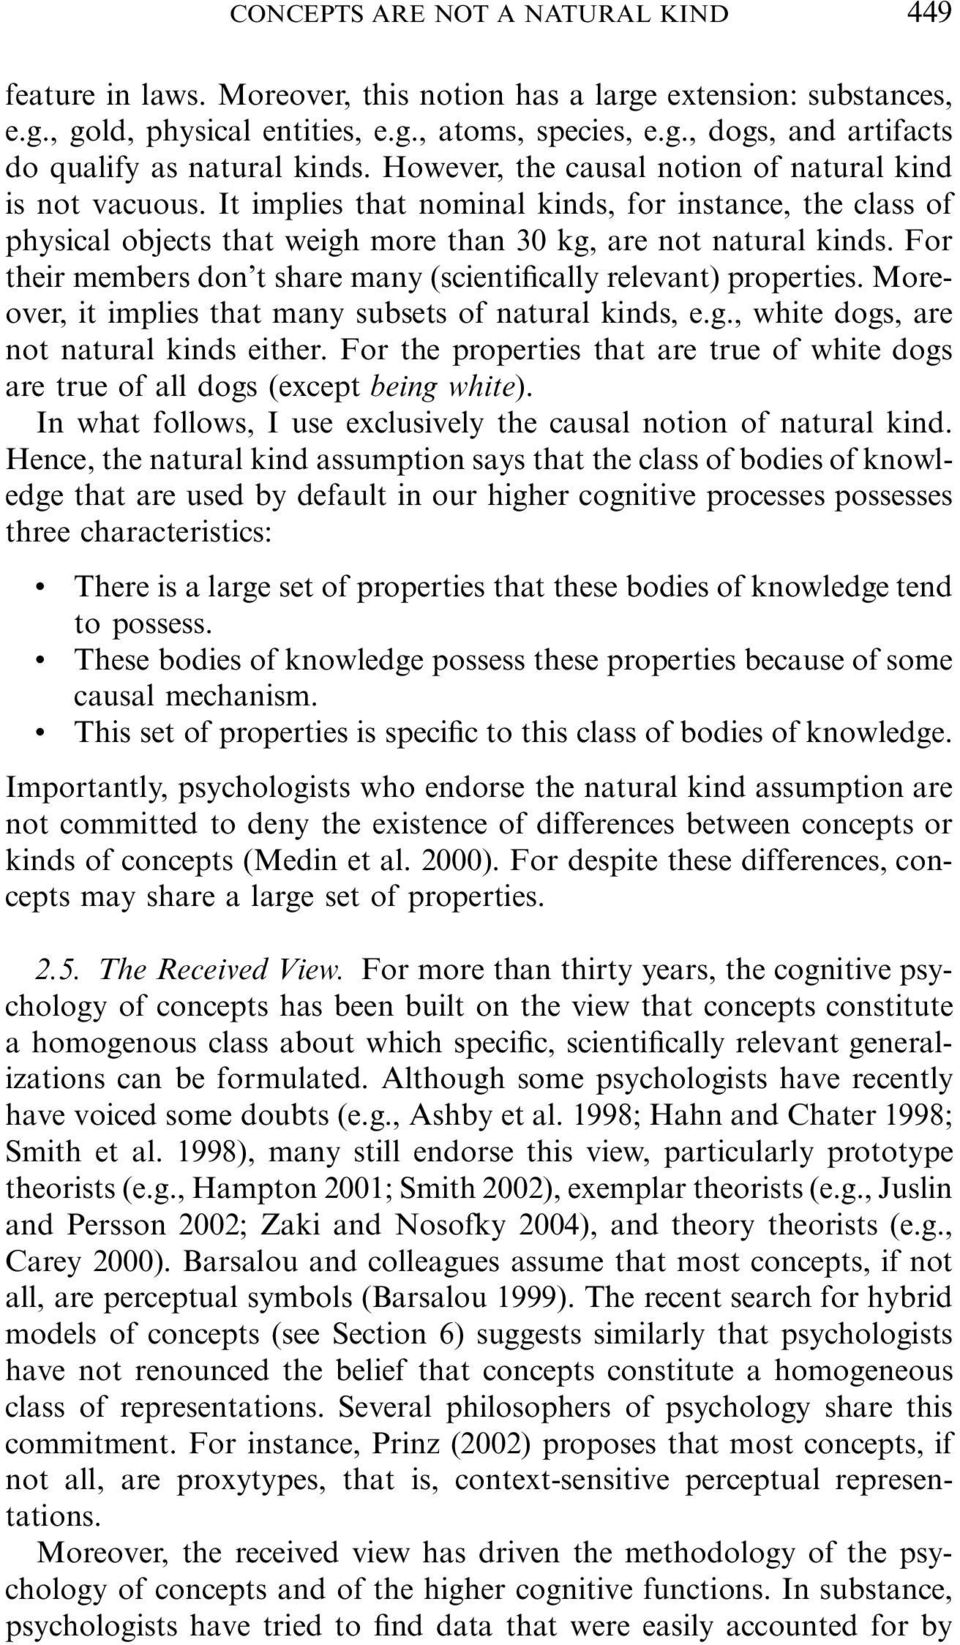 For their members don t share many (scientifically relevant) properties. Moreover, it implies that many subsets of natural kinds, e.g., white dogs, are not natural kinds either.